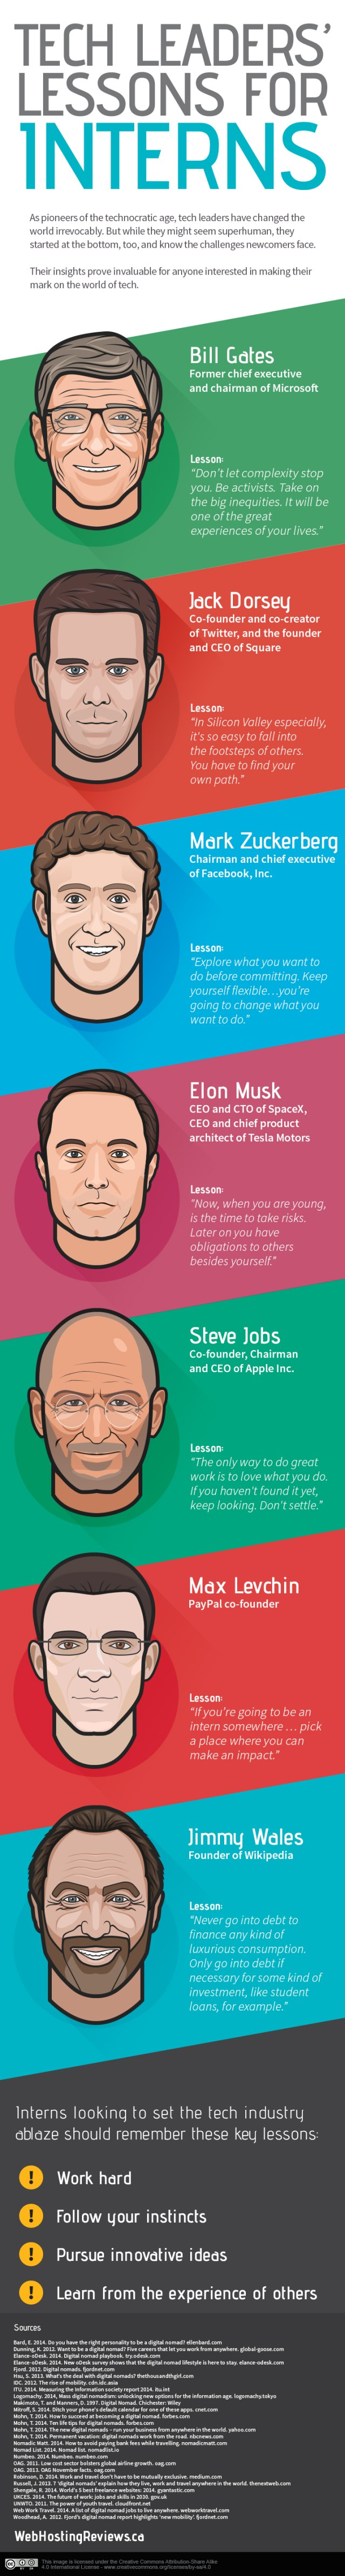 Tech Leaders: Lessons to Interns